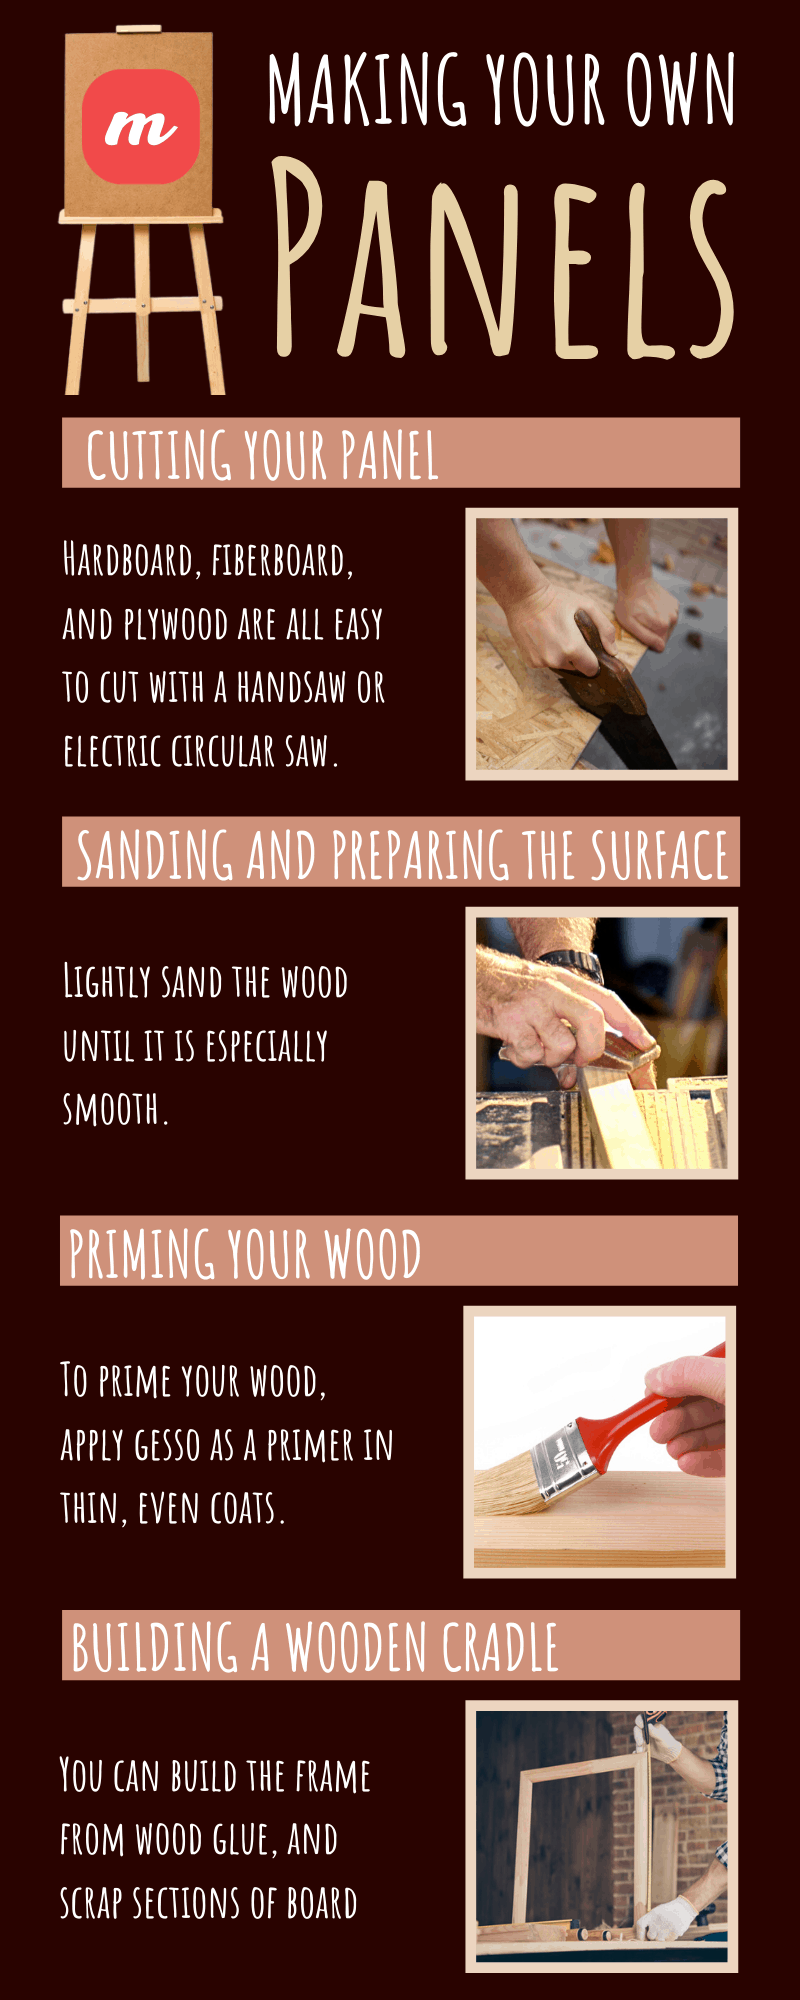 The Best Guide for Hardboard or Wood Painting - Infographic